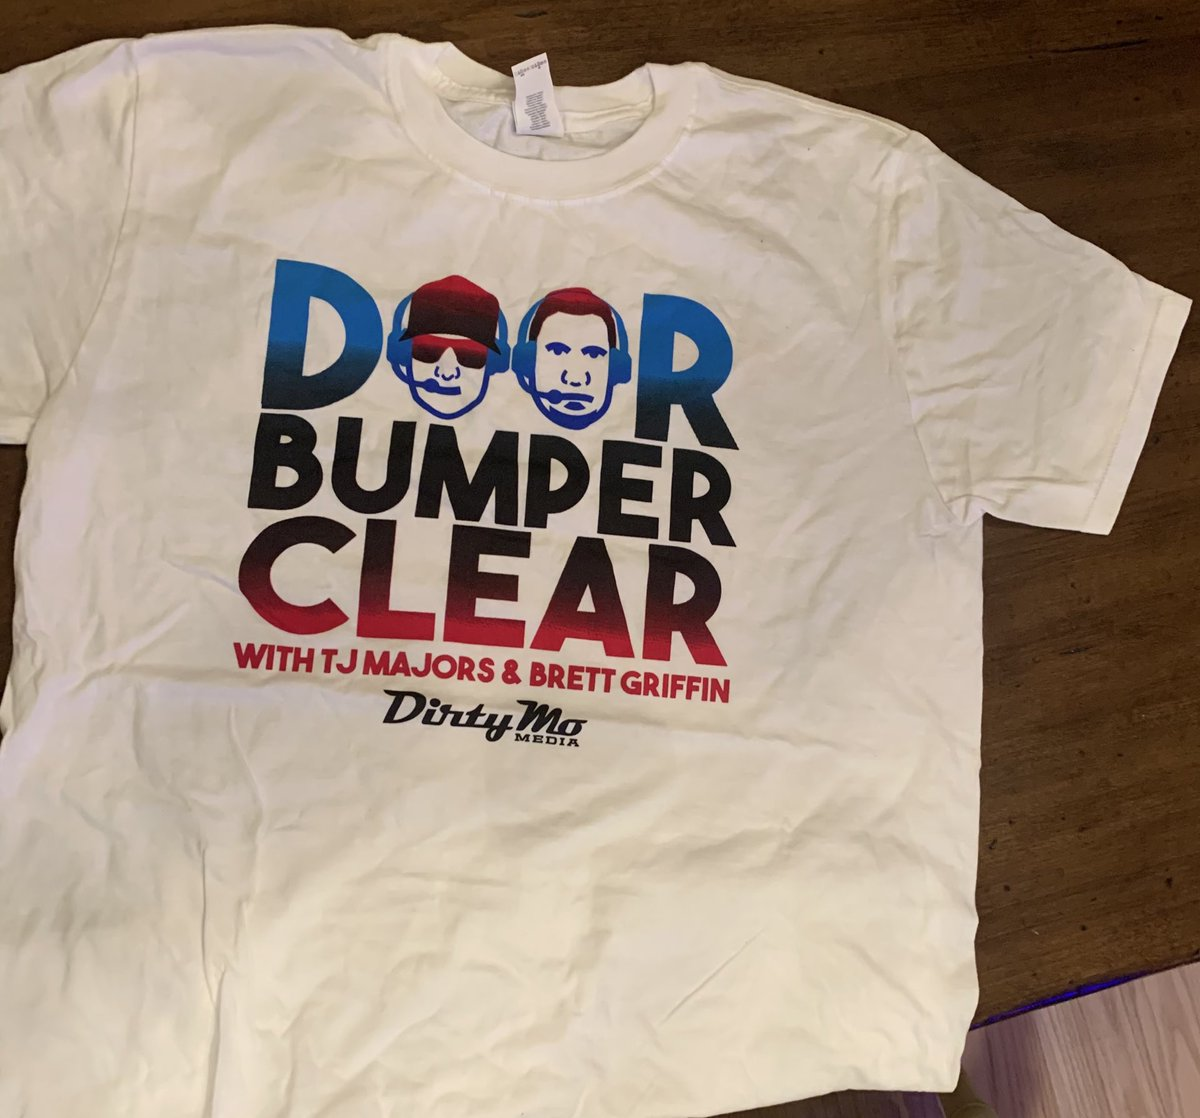 Surprise!‼️  Retweet and follow for a chance to win this DBC shirt. This is the last of this kind I'll mail out! #NoFreddie #SizeL #NASCAR